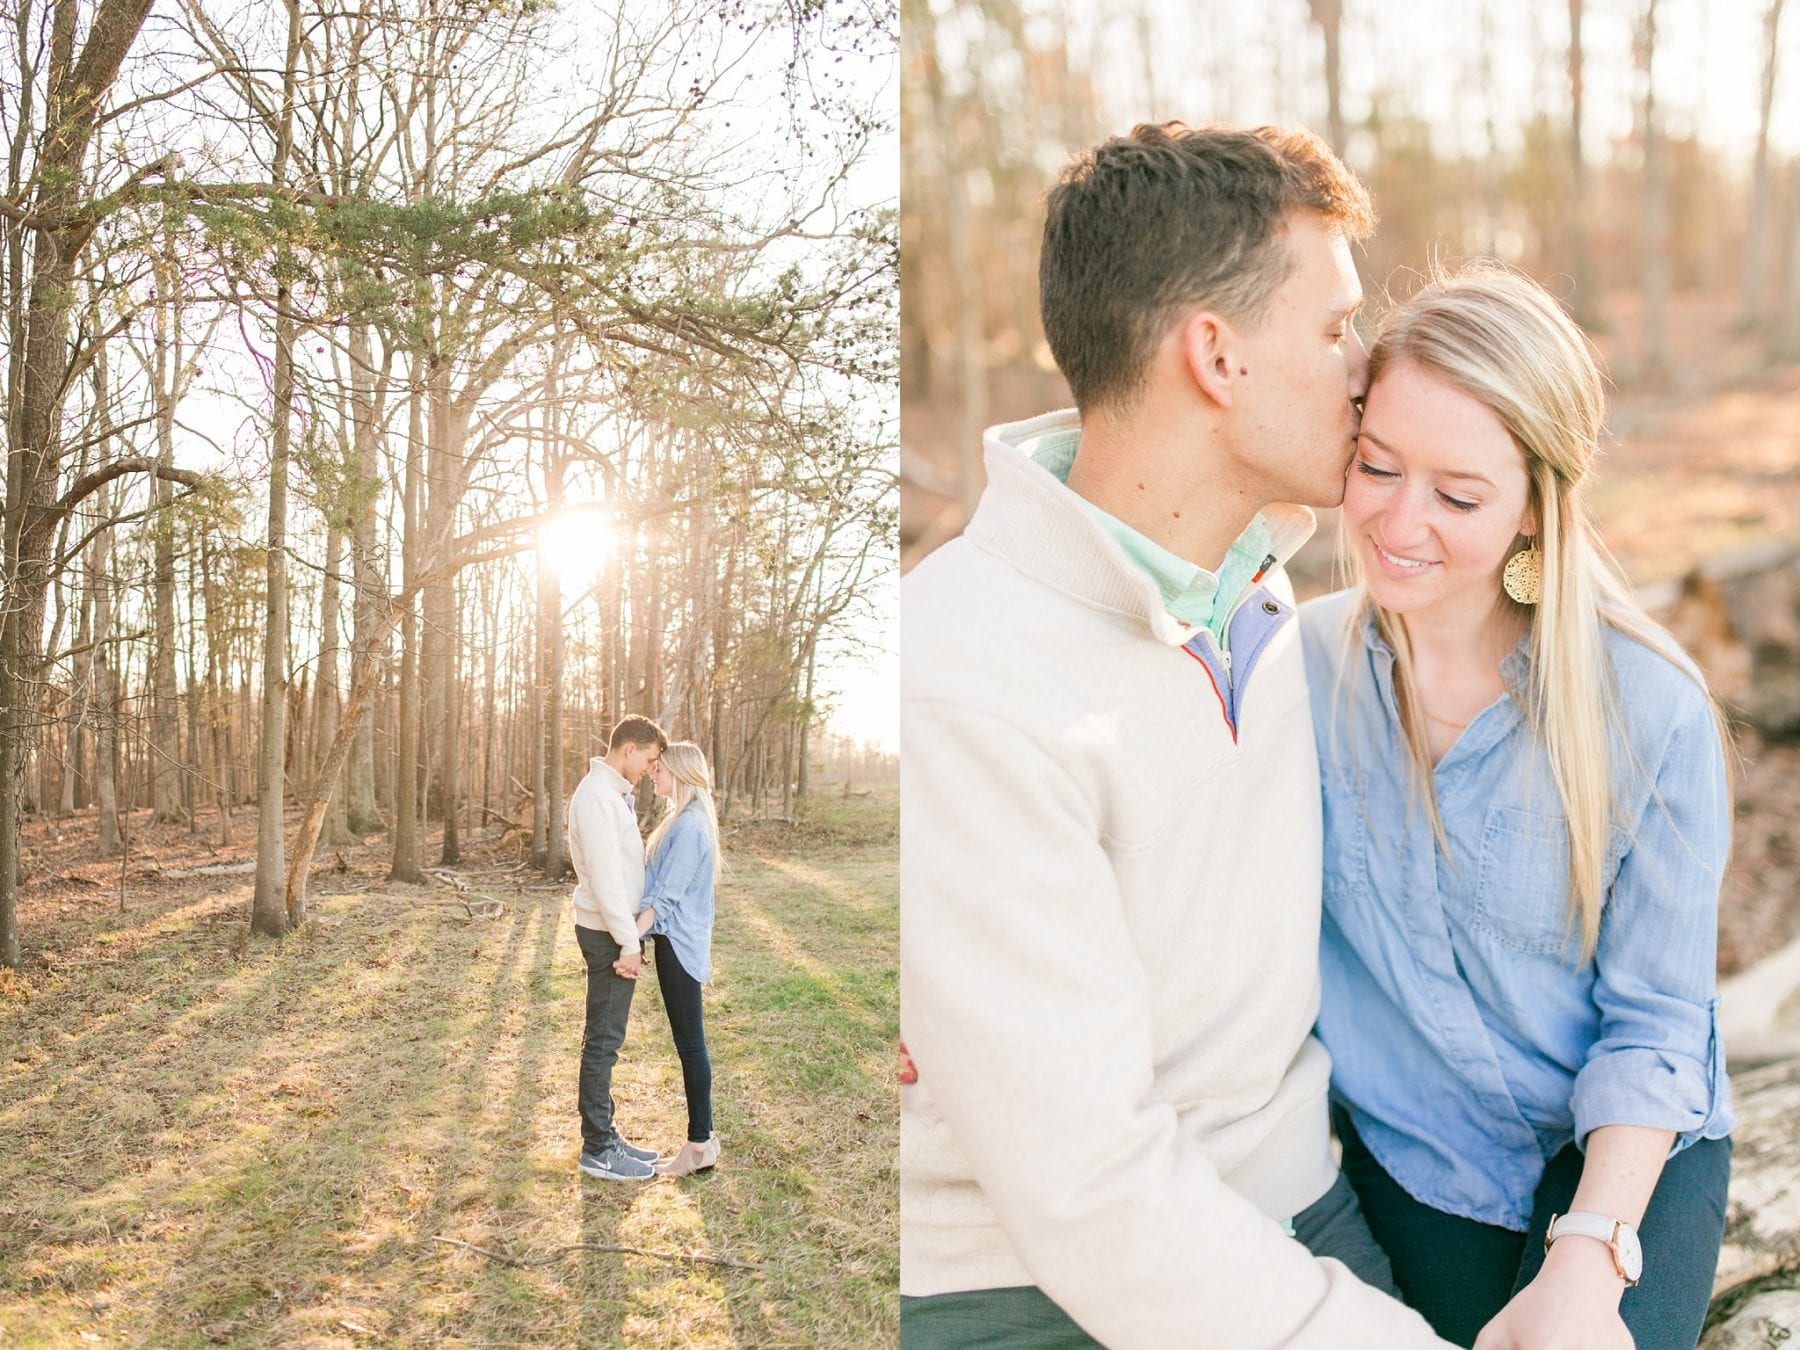 Manassas Battlefield Engagement Session Virginia Wedding Photographer Danielle & Charlie Megan Kelsey Photography-5398.jpg